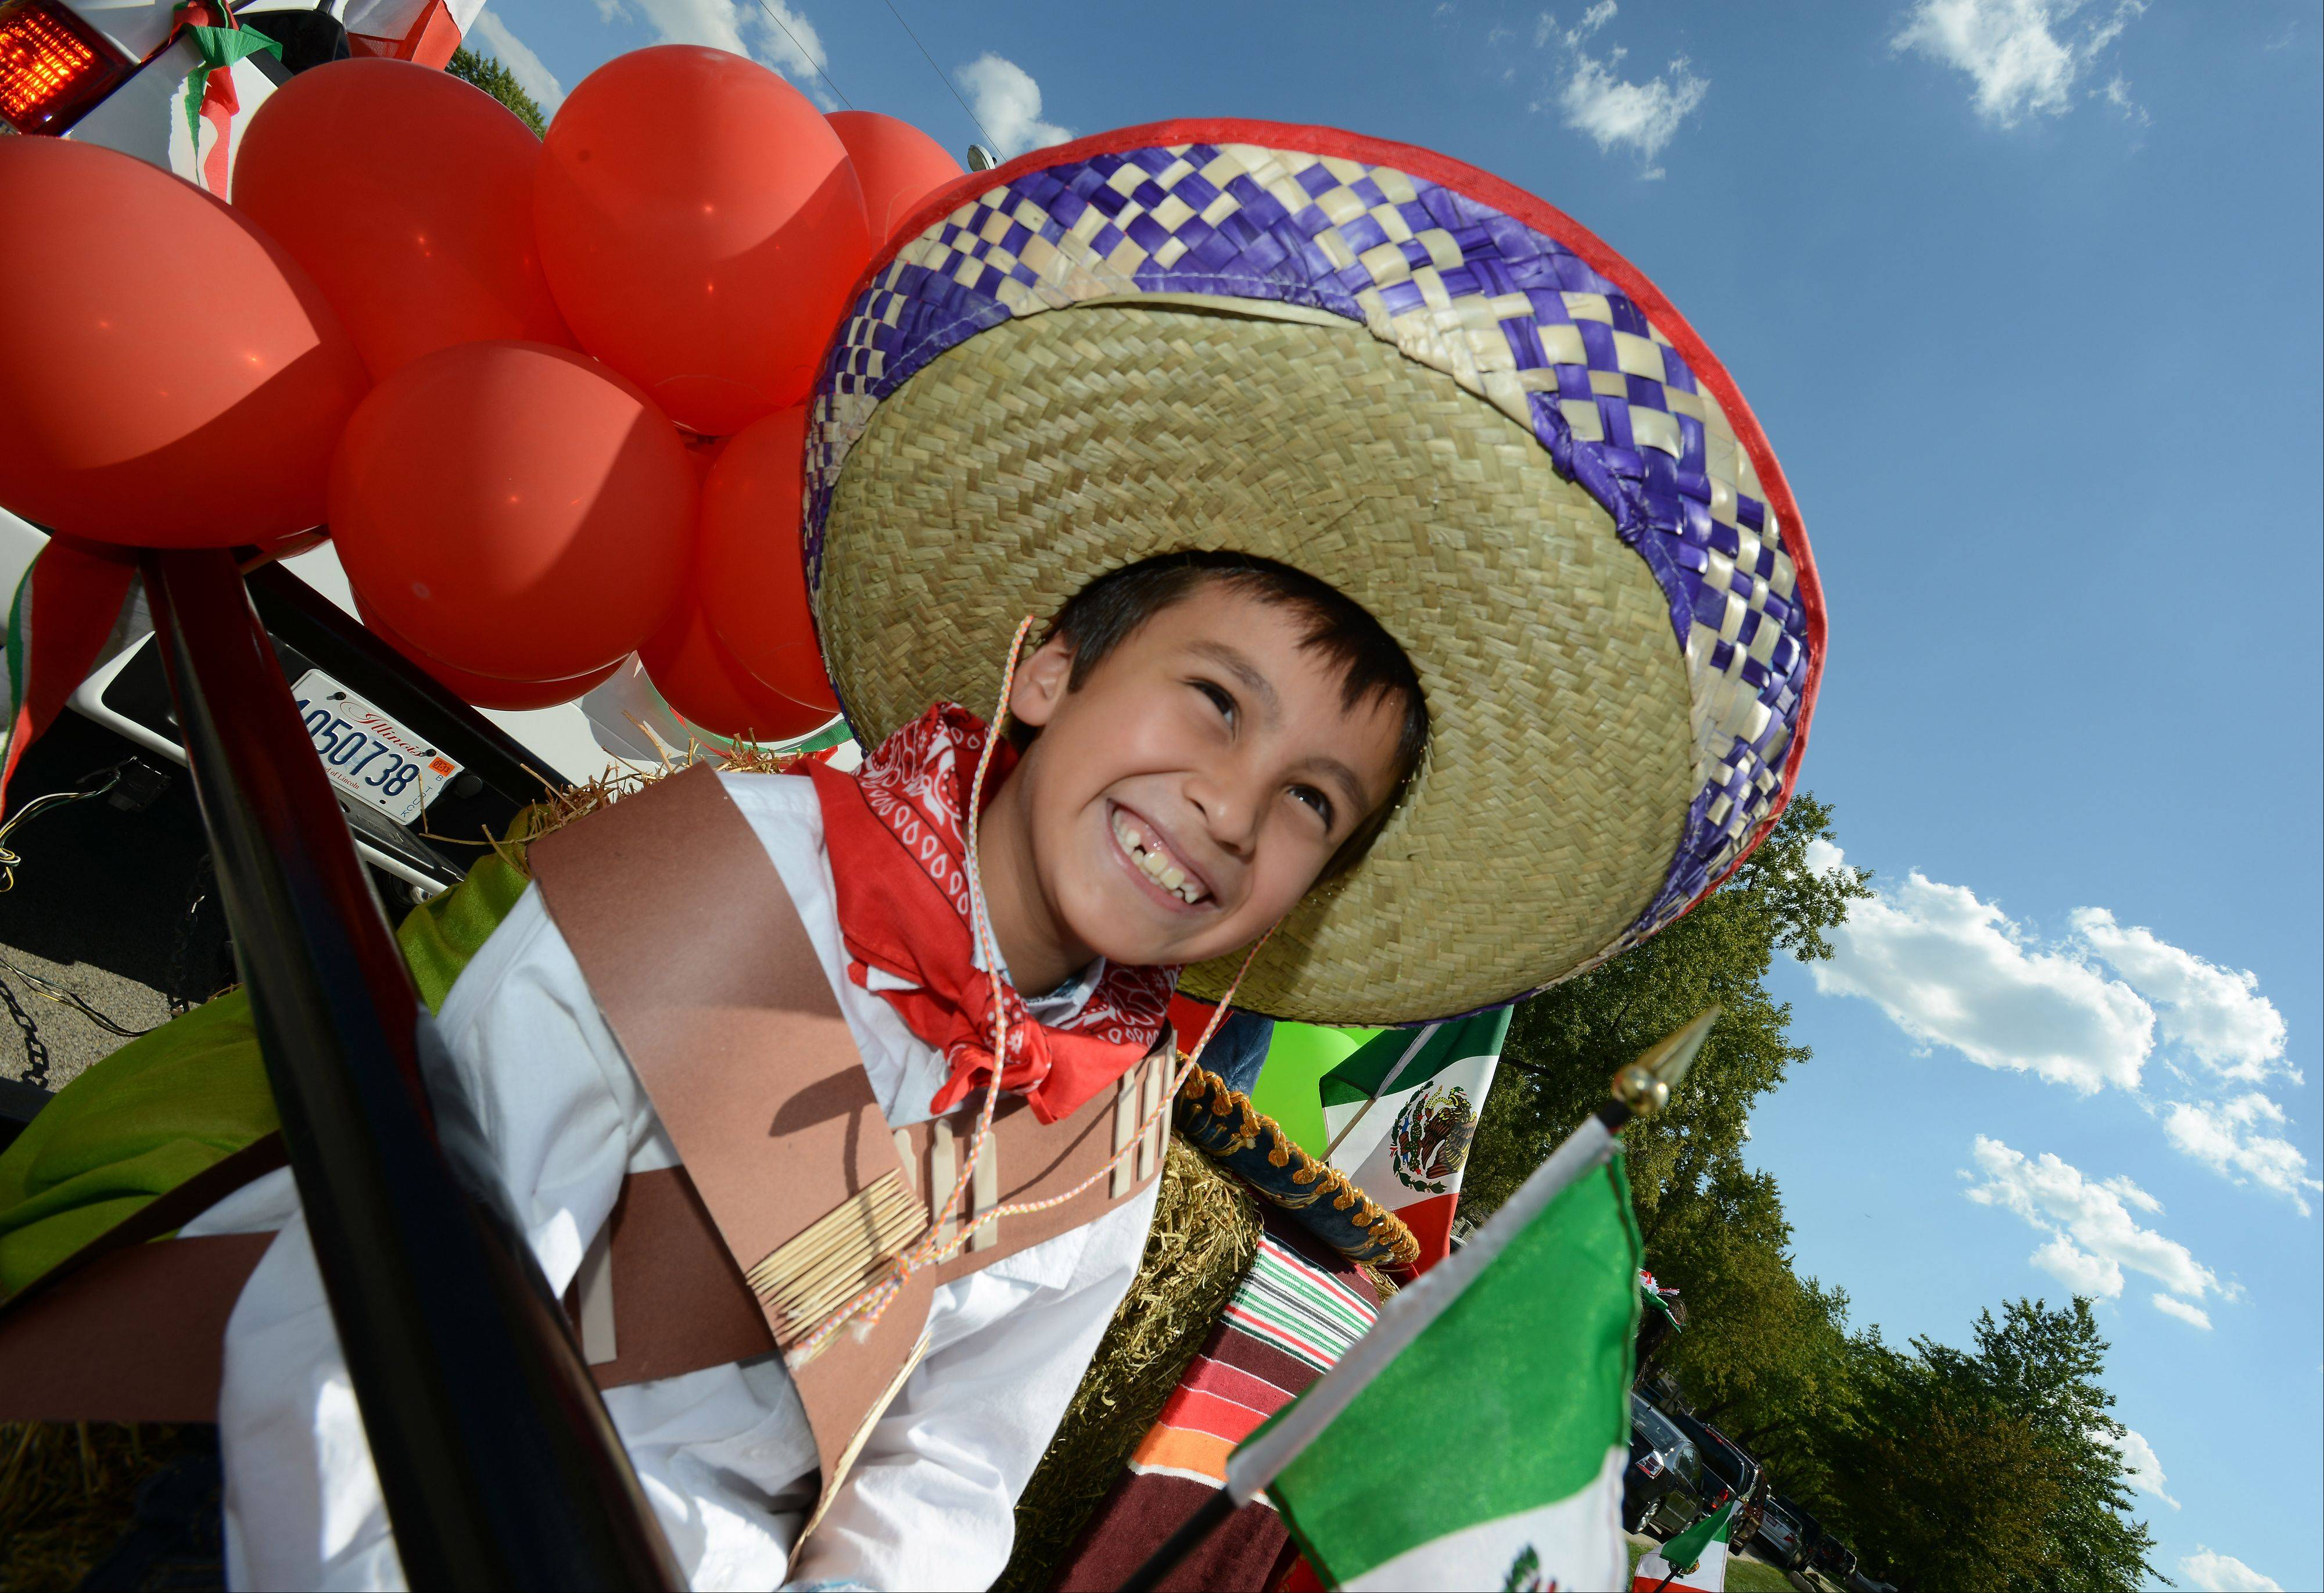 Oscar Medina, 7, of Hanover Park is all smiles as he rides in the Mexican Independence Day parade in Hanover Park on Saturday.